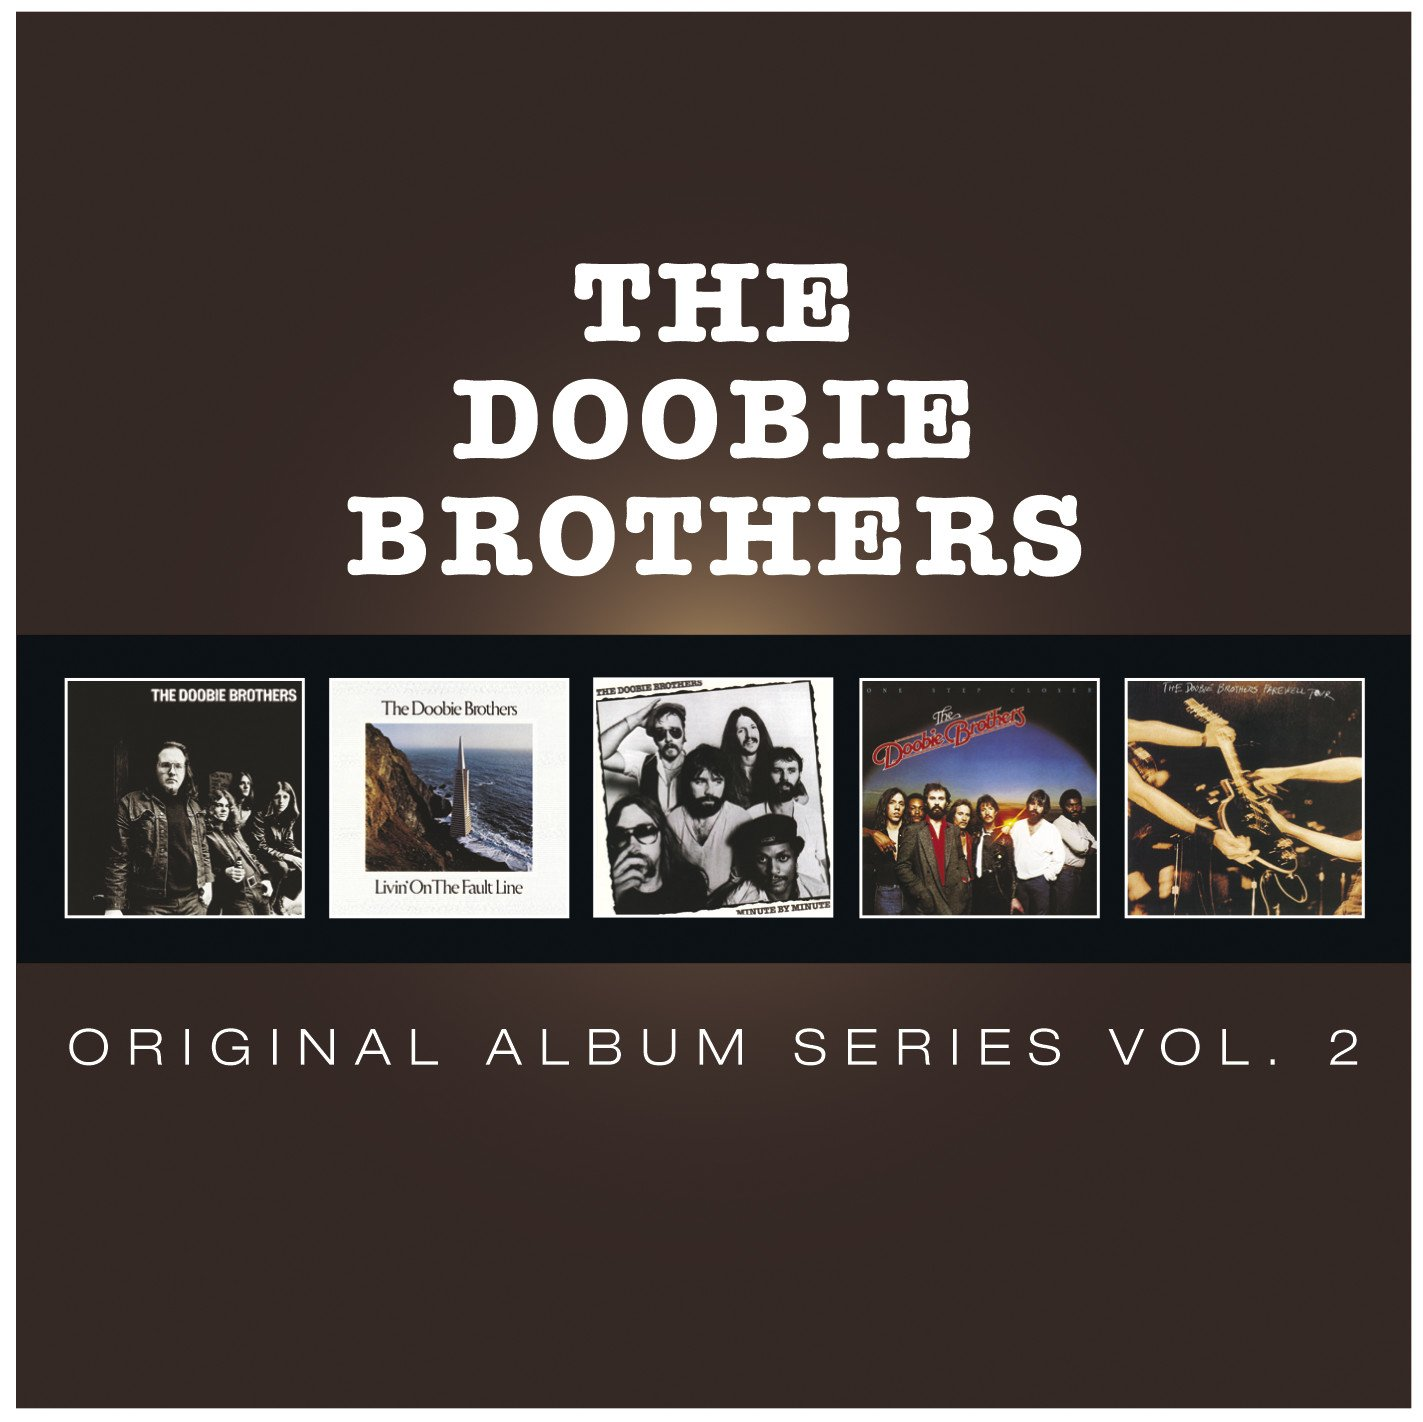 Original Album Series, Vol. 2